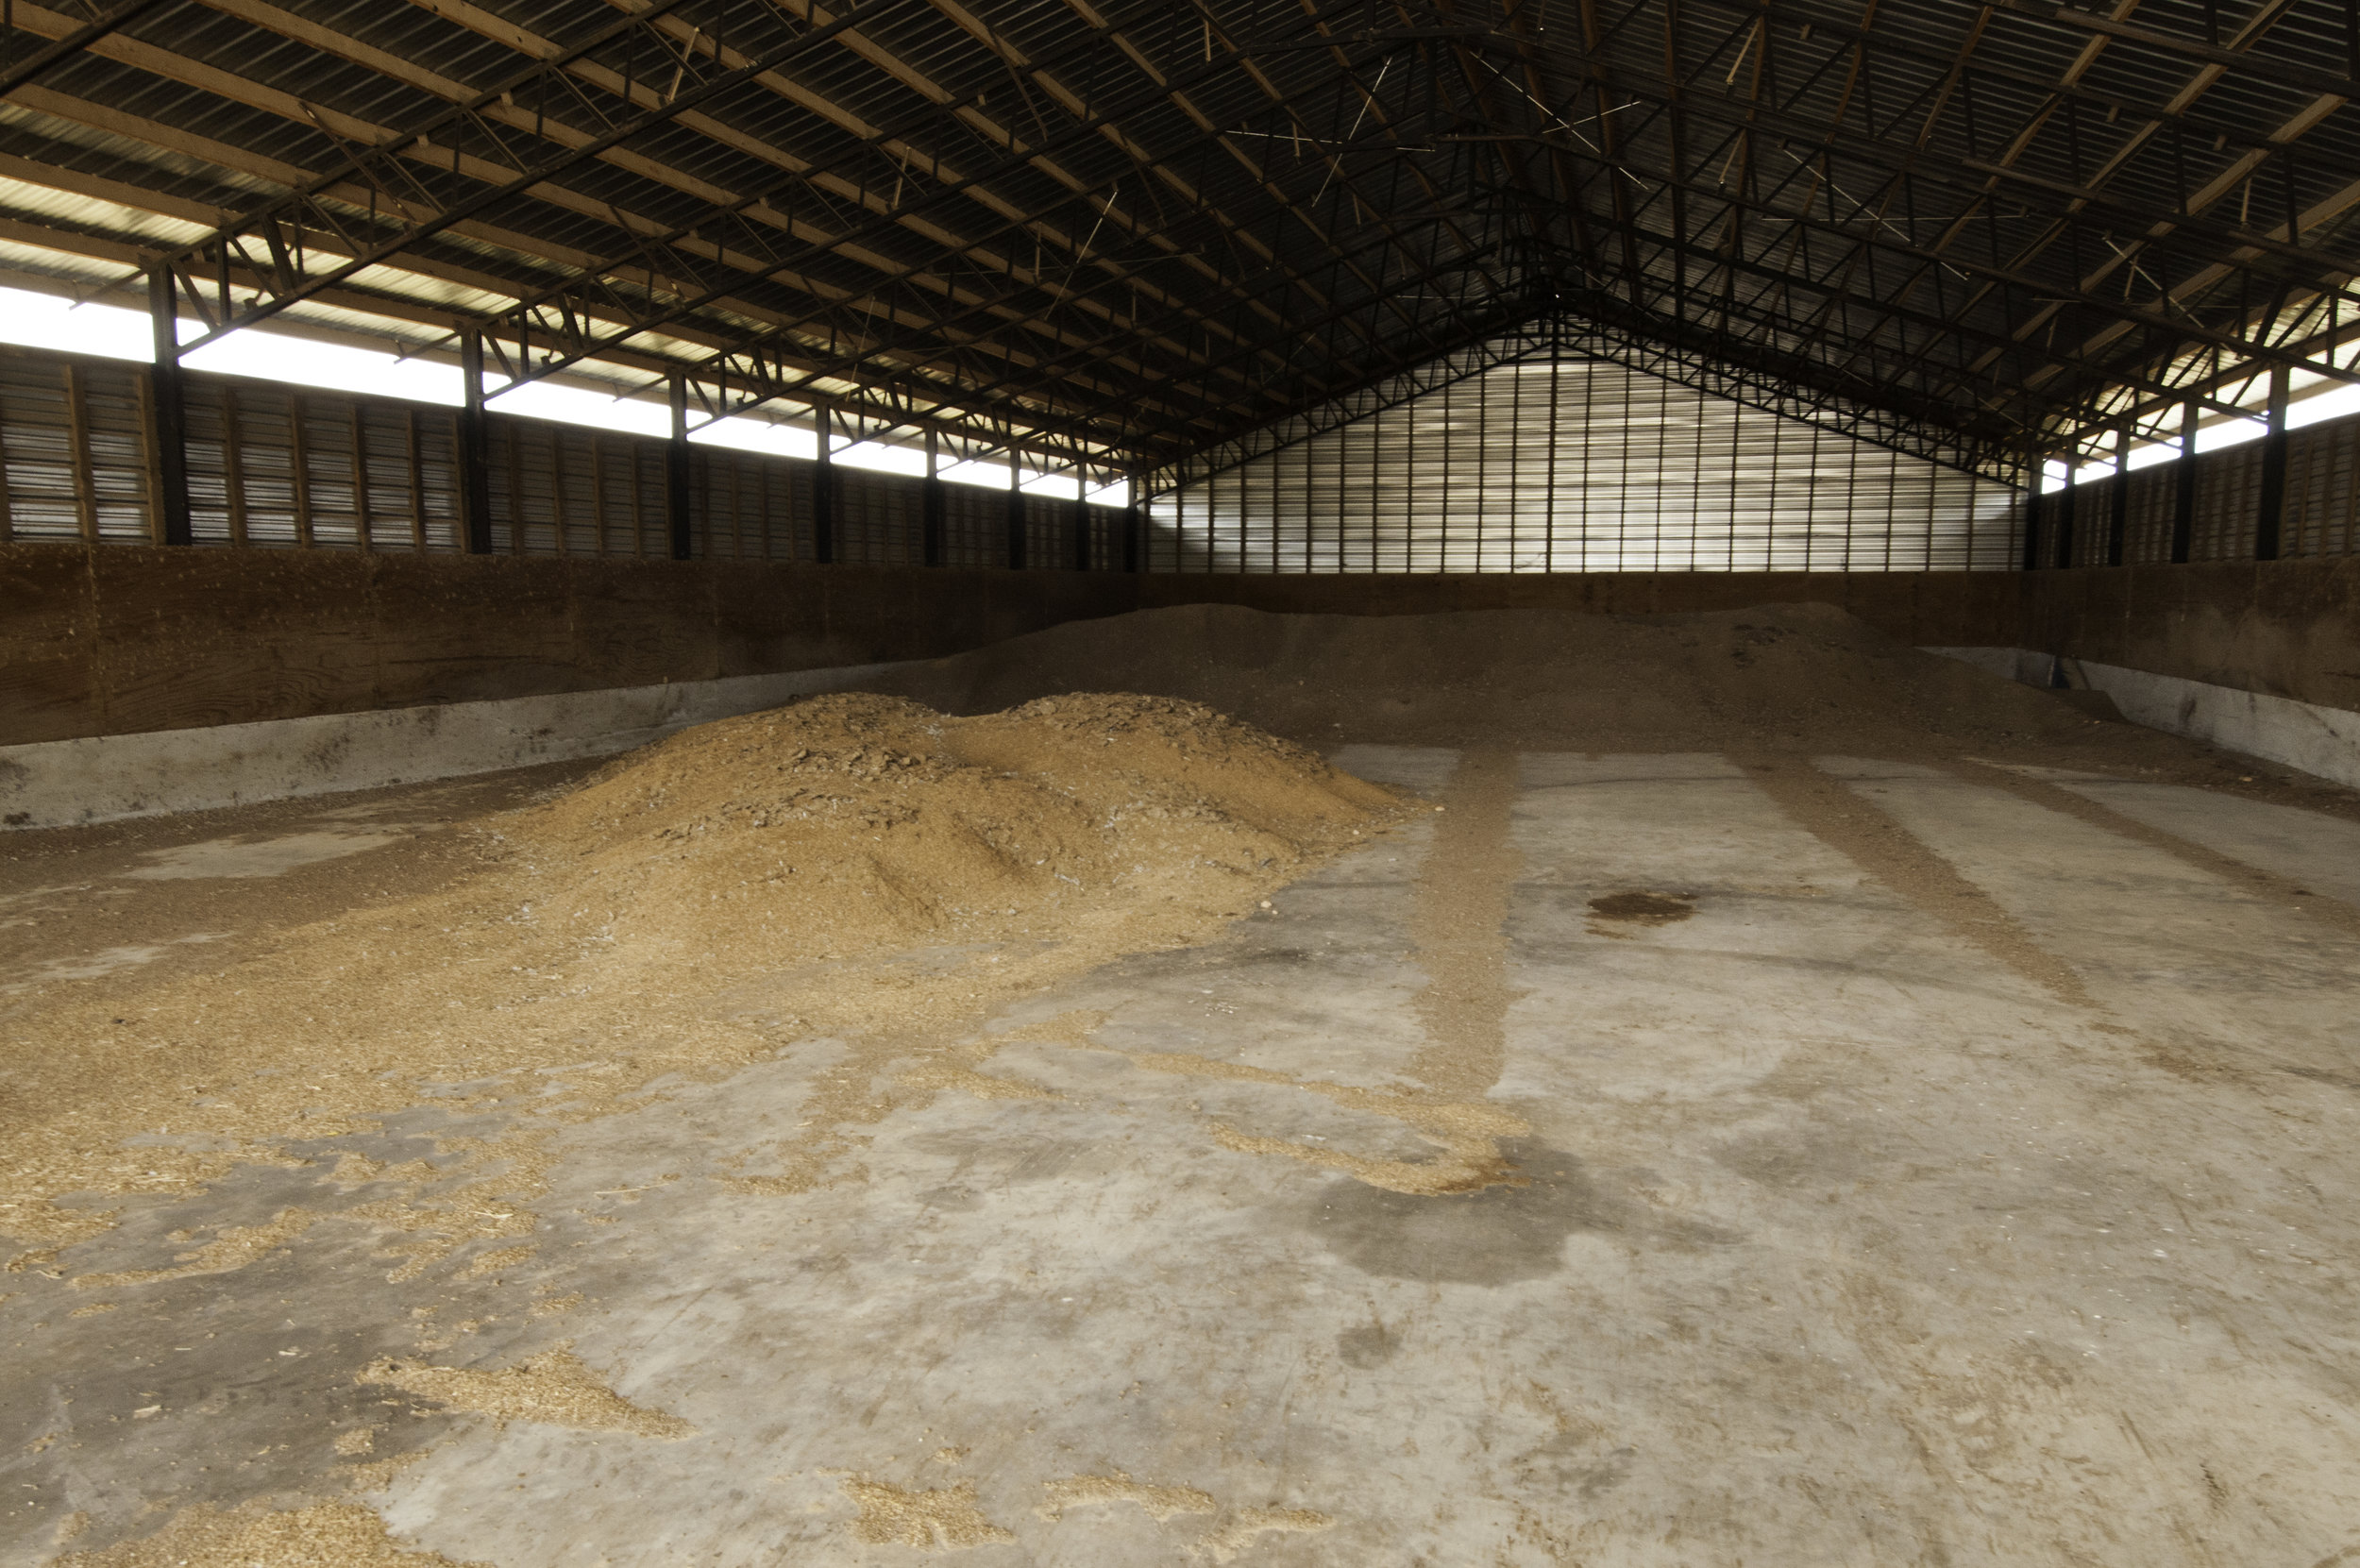 Dry stacking of poultry manure in poultry house. USDA photo by Bob Nichols.